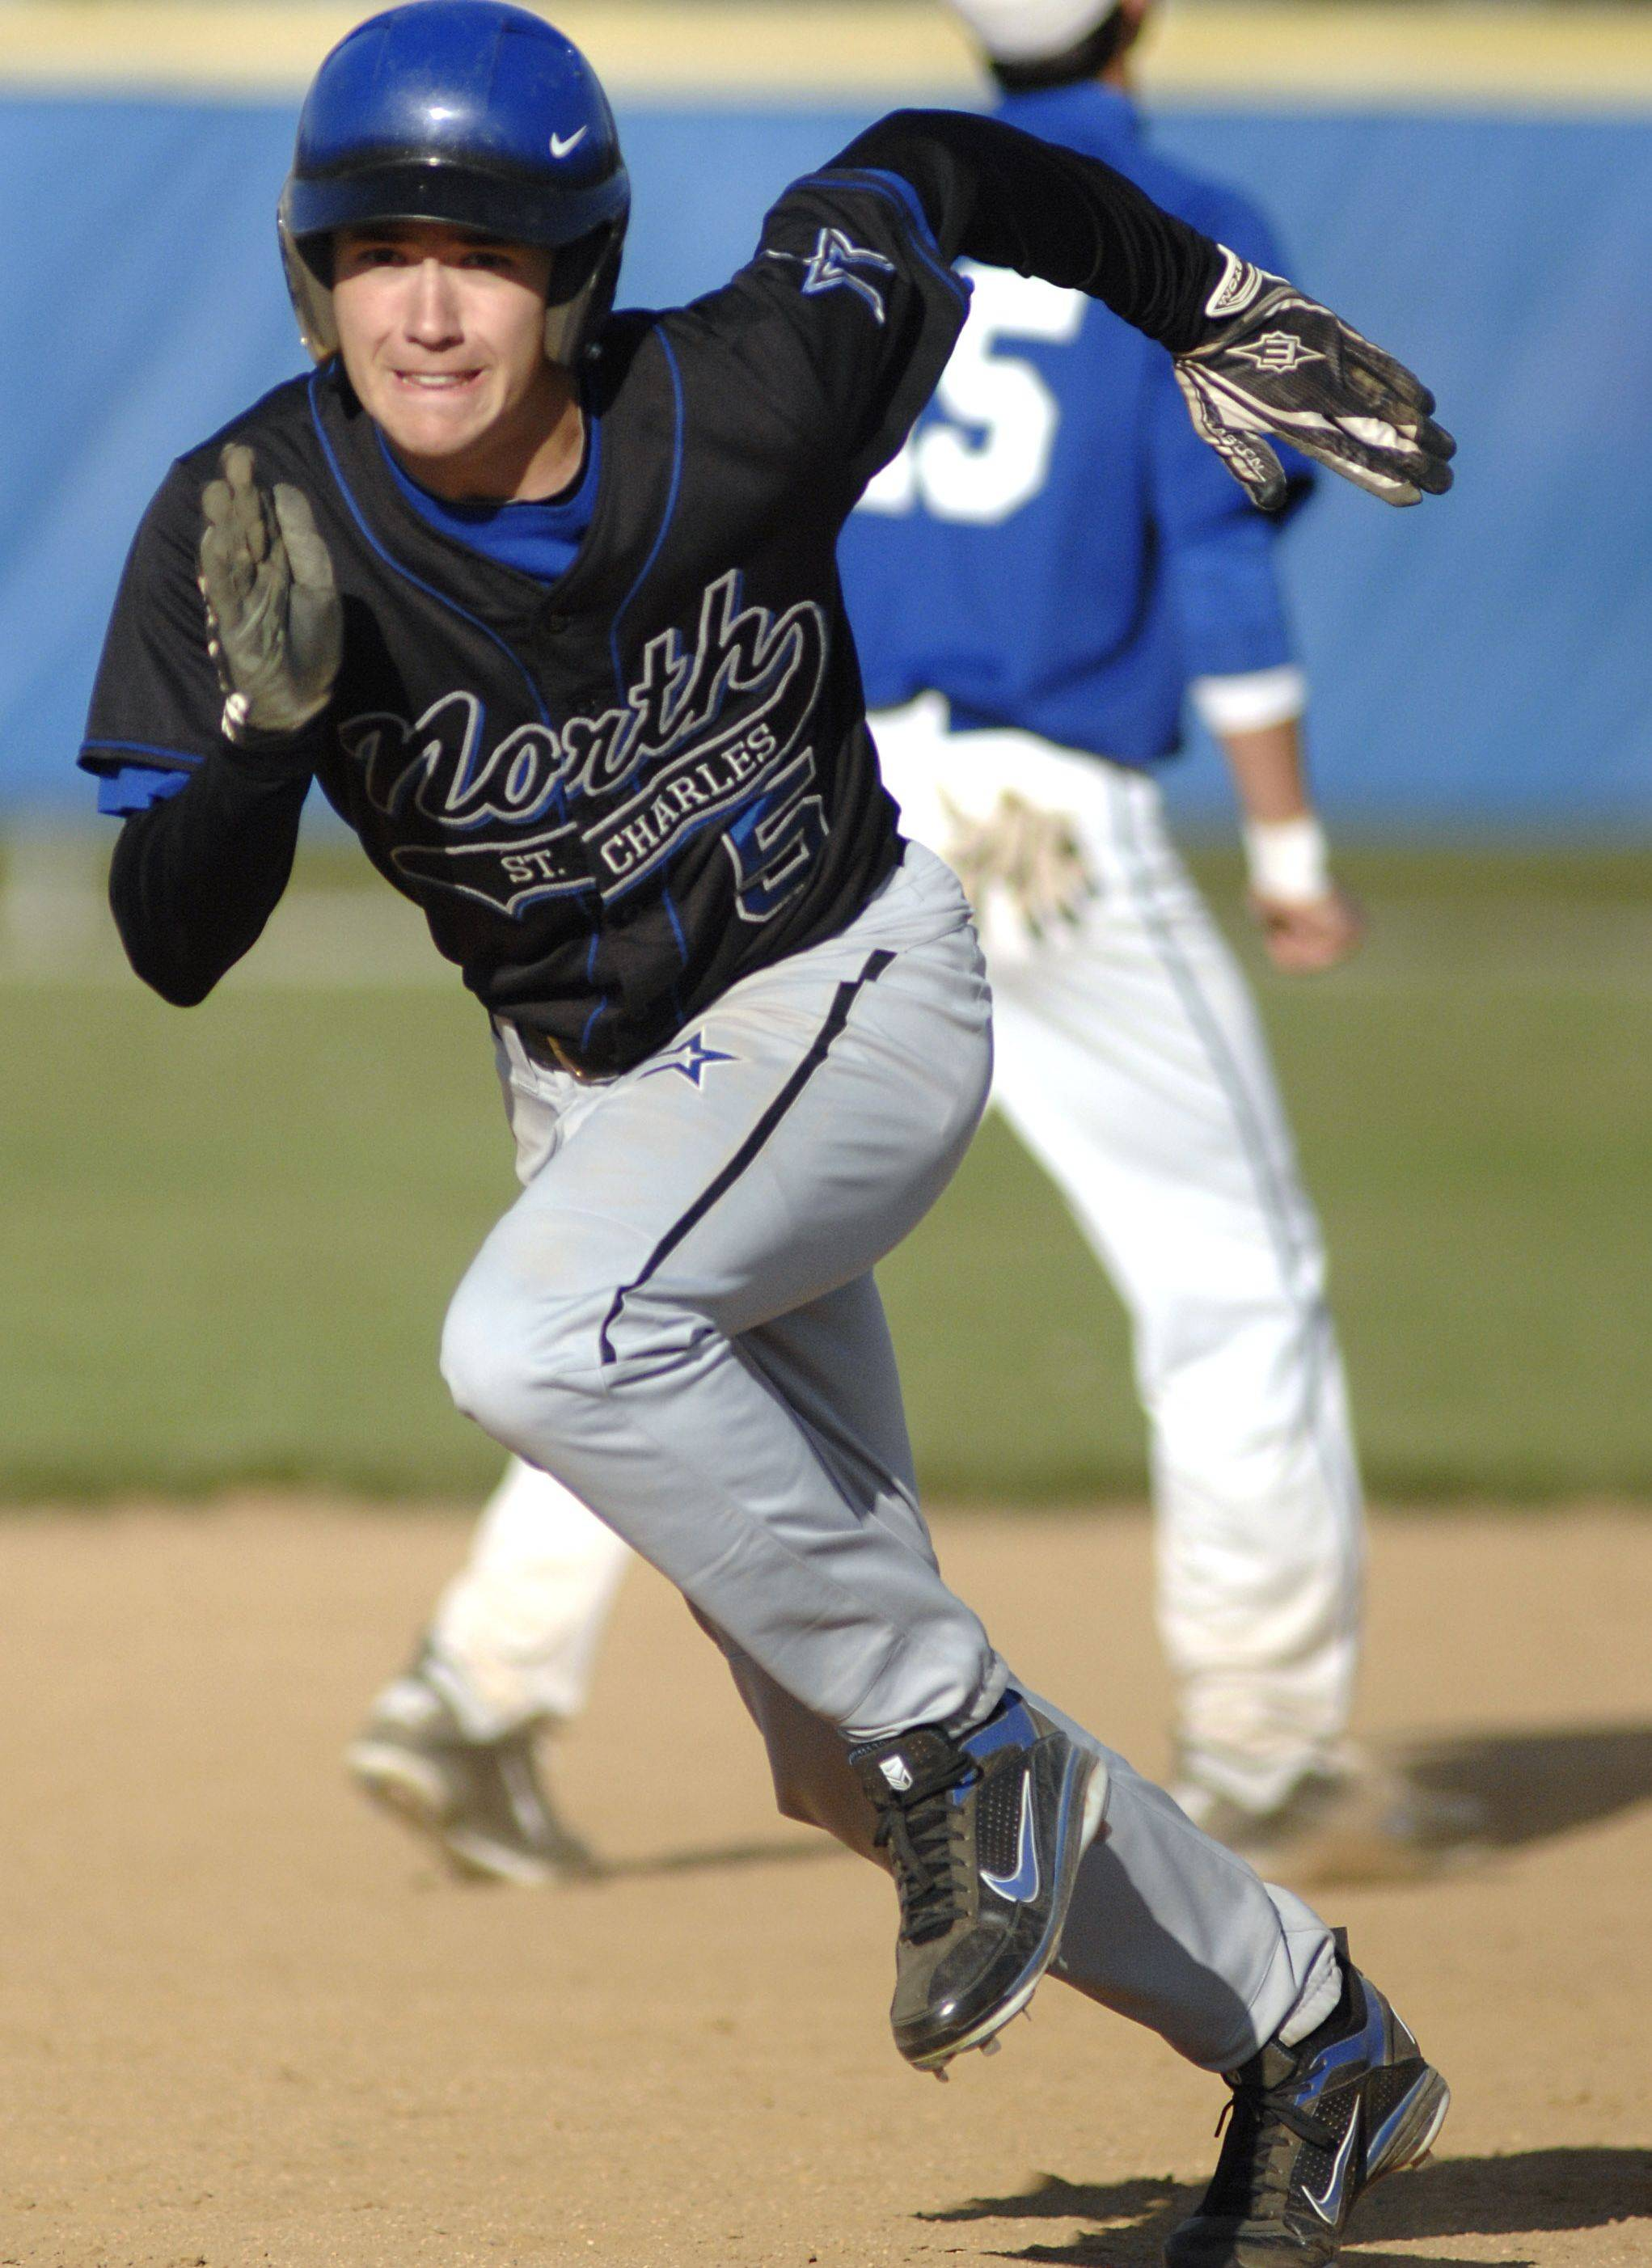 Kurt Barbeau is moving from the outfield to shortstop for St. Charles North.